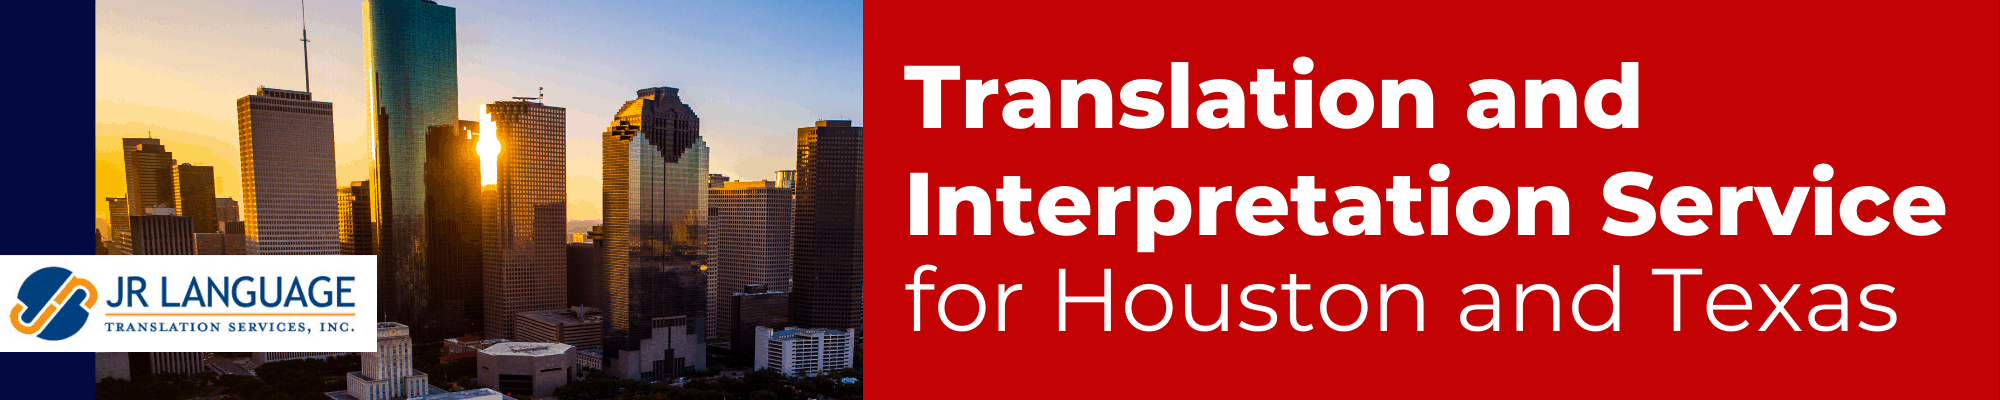 translation and interpretation services for Houston